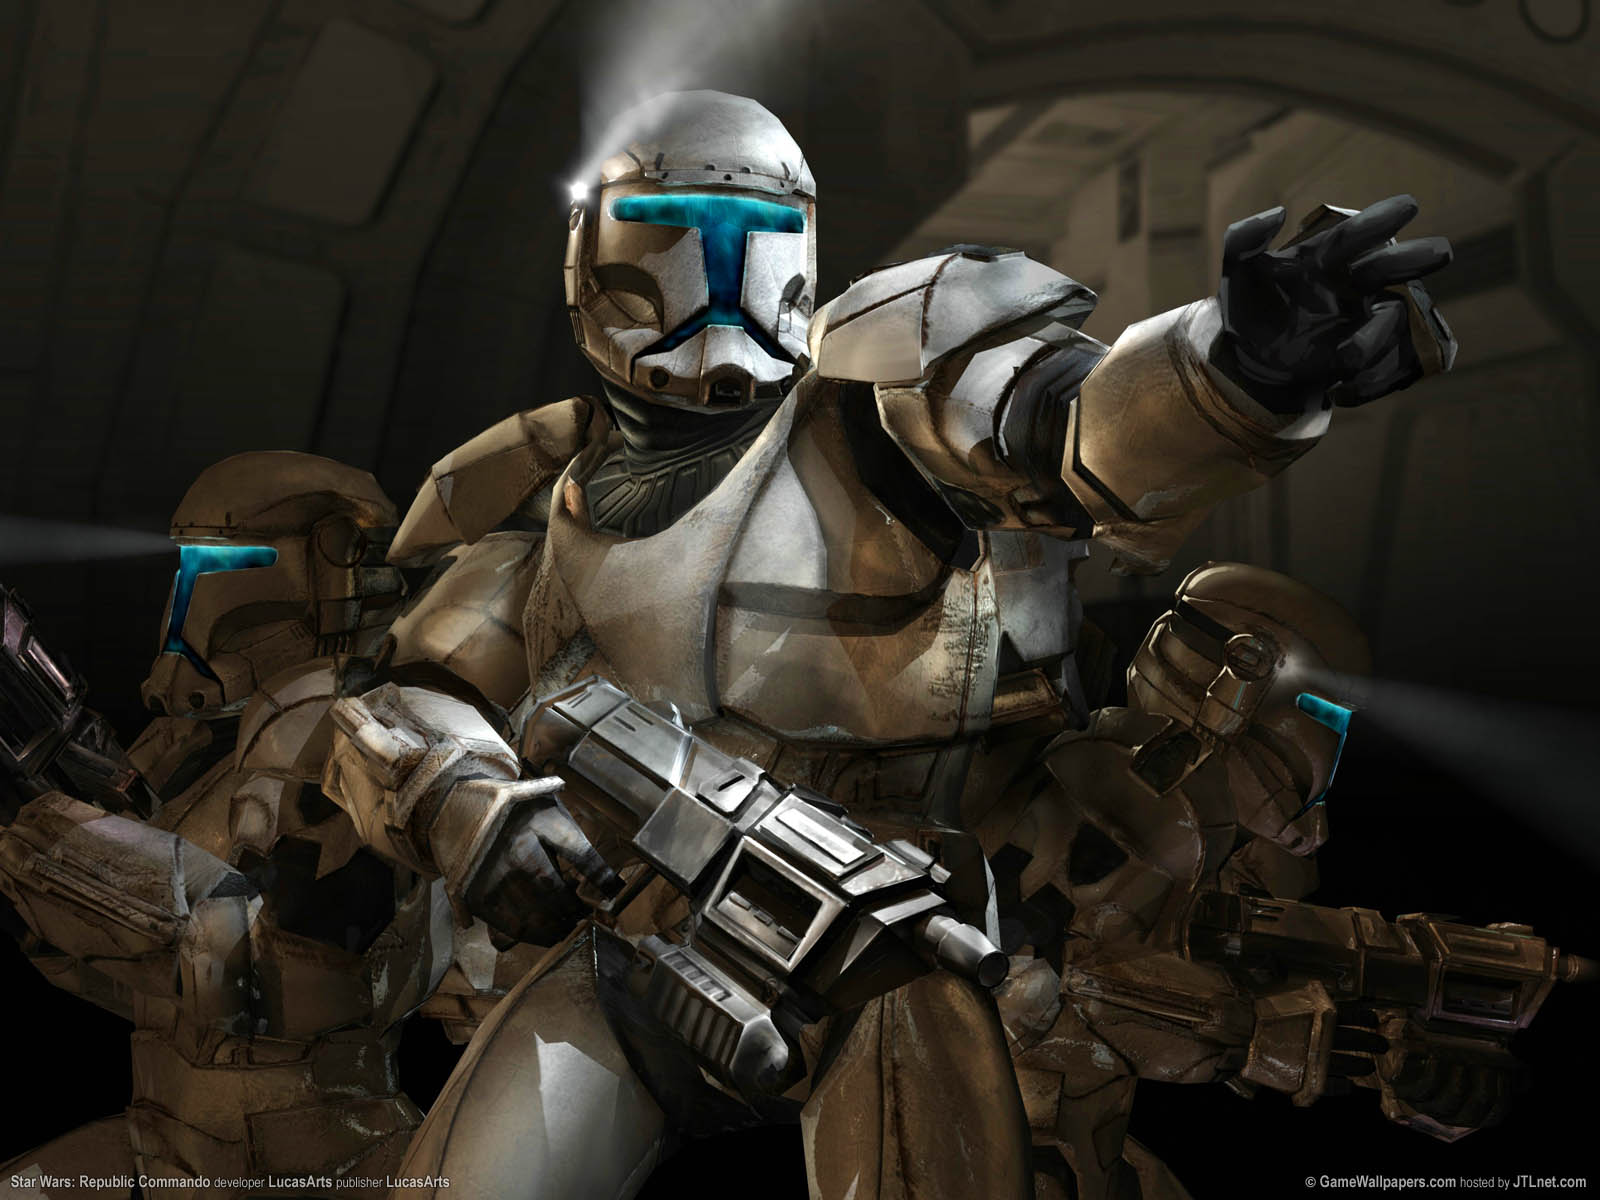 Star Wars Republic Commando 661.24 Kb